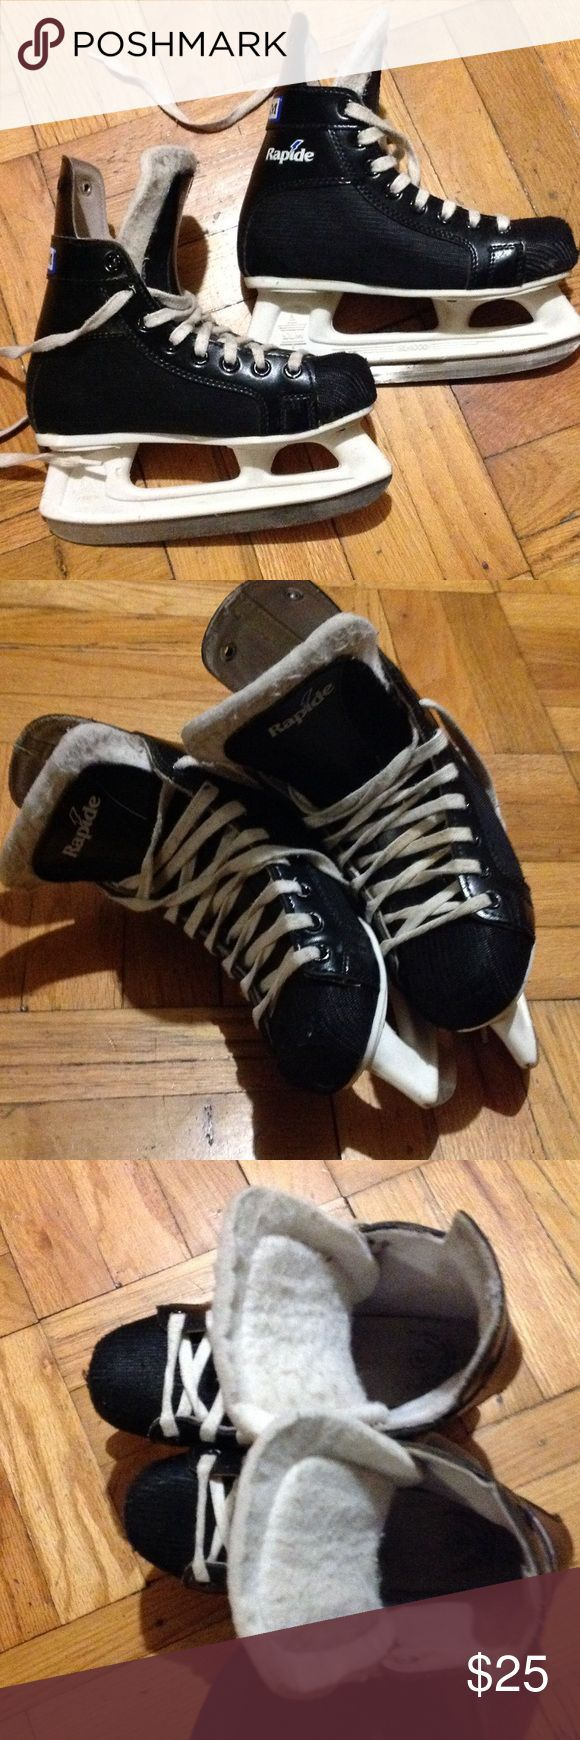 CCM Hockey Skates Boys CCM Rapide hockey skates. Great ankle support. Needs to be sharpened. CCM Other